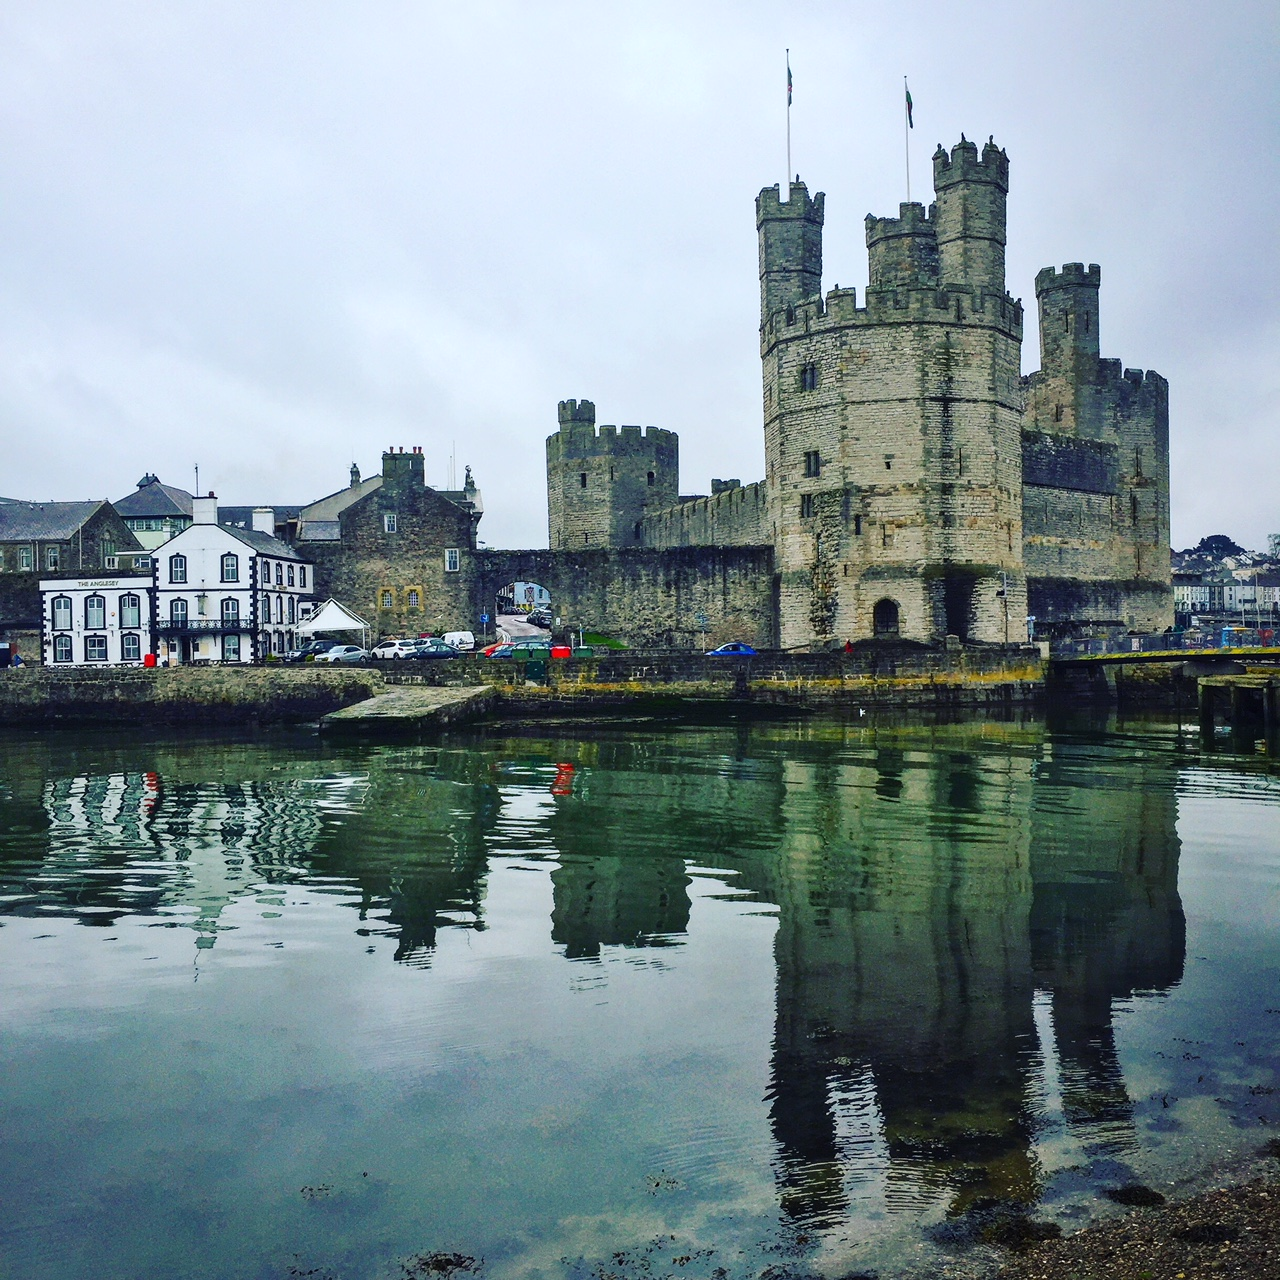 - Even though it was a busy month, we enjoyed a day trip to Caernarfon, with its winding lanes, independent shops and cafes, and magnificent castle. It was great to discover the fabulous Roberts and Astley store where we fell in love with some vintage furniture.The town is a real highlight for any visitor to the area!Jasmine